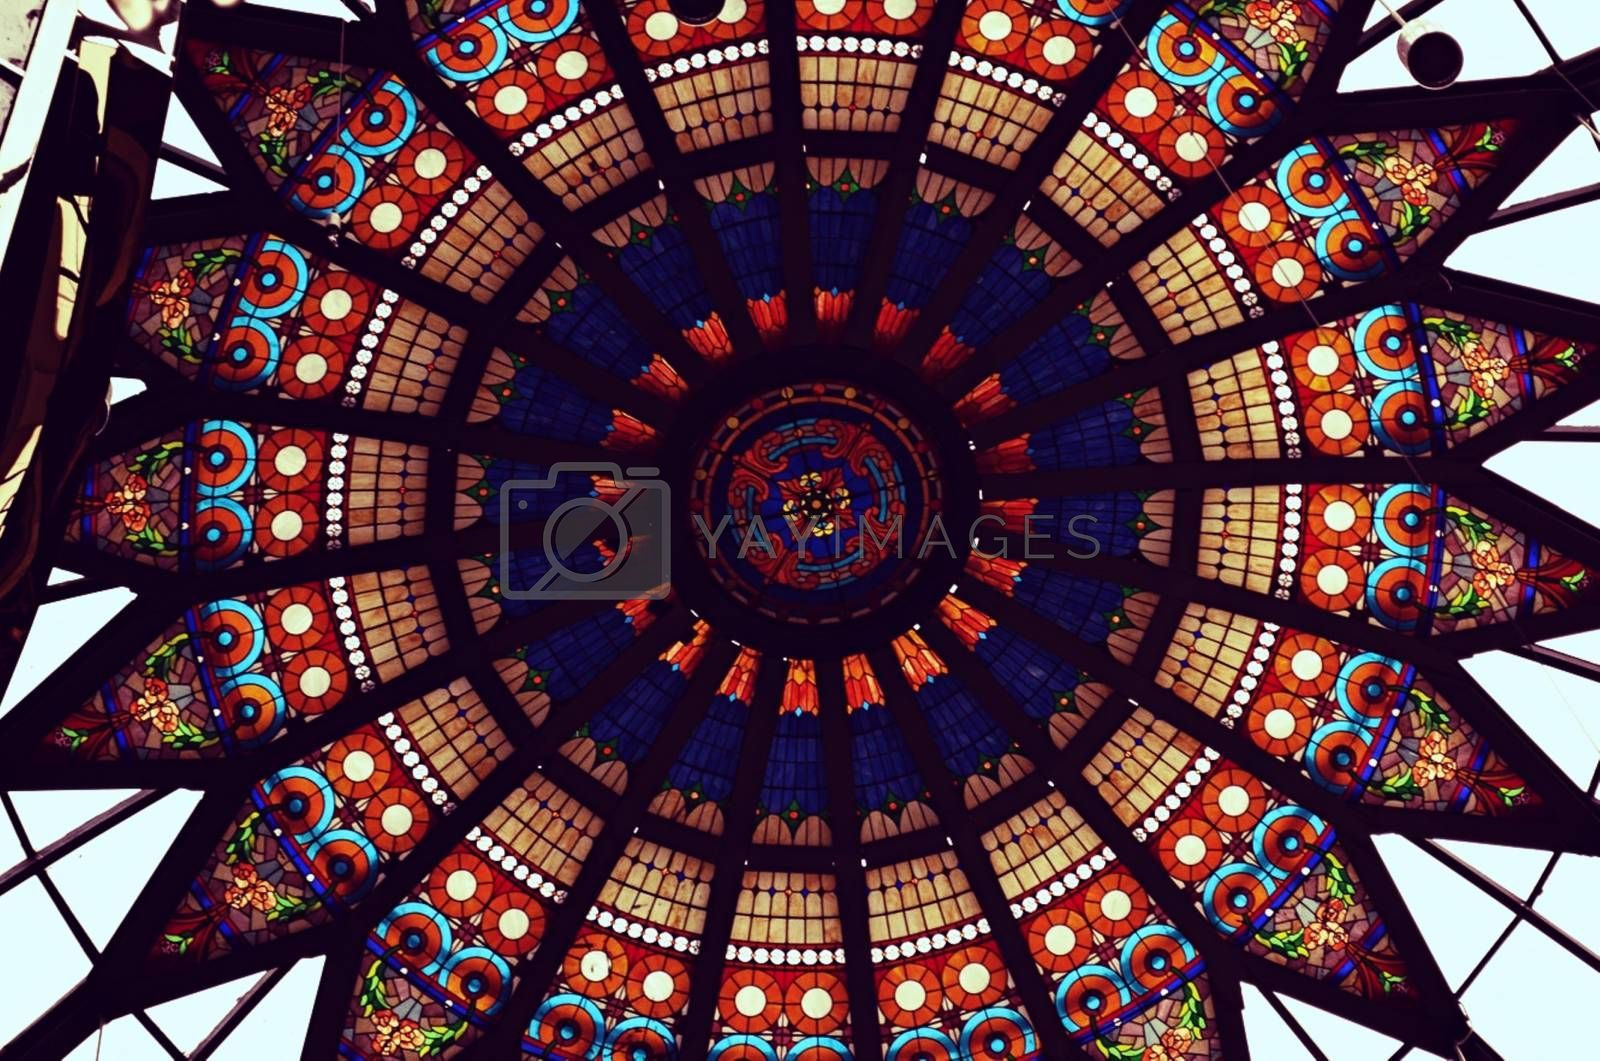 Royalty free image of Colorful, ornate window in the form of a circle by balage941